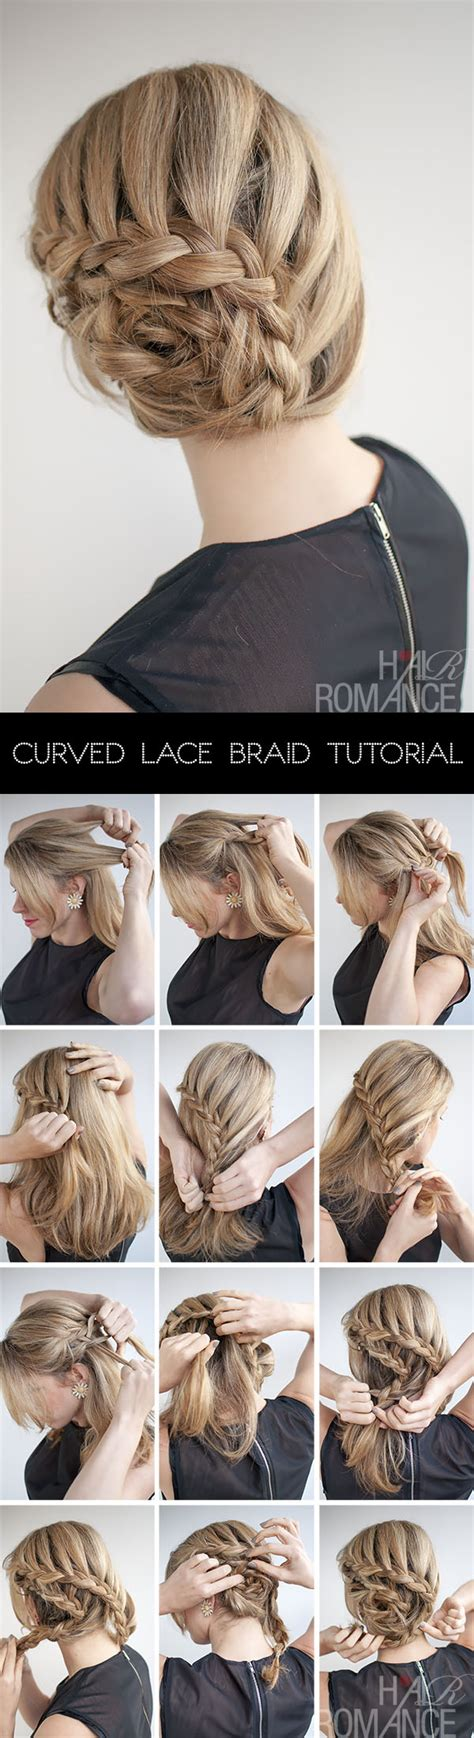 parting tutorial for braiding hair curved lace braid hairstyle tutorial inspired by nicole